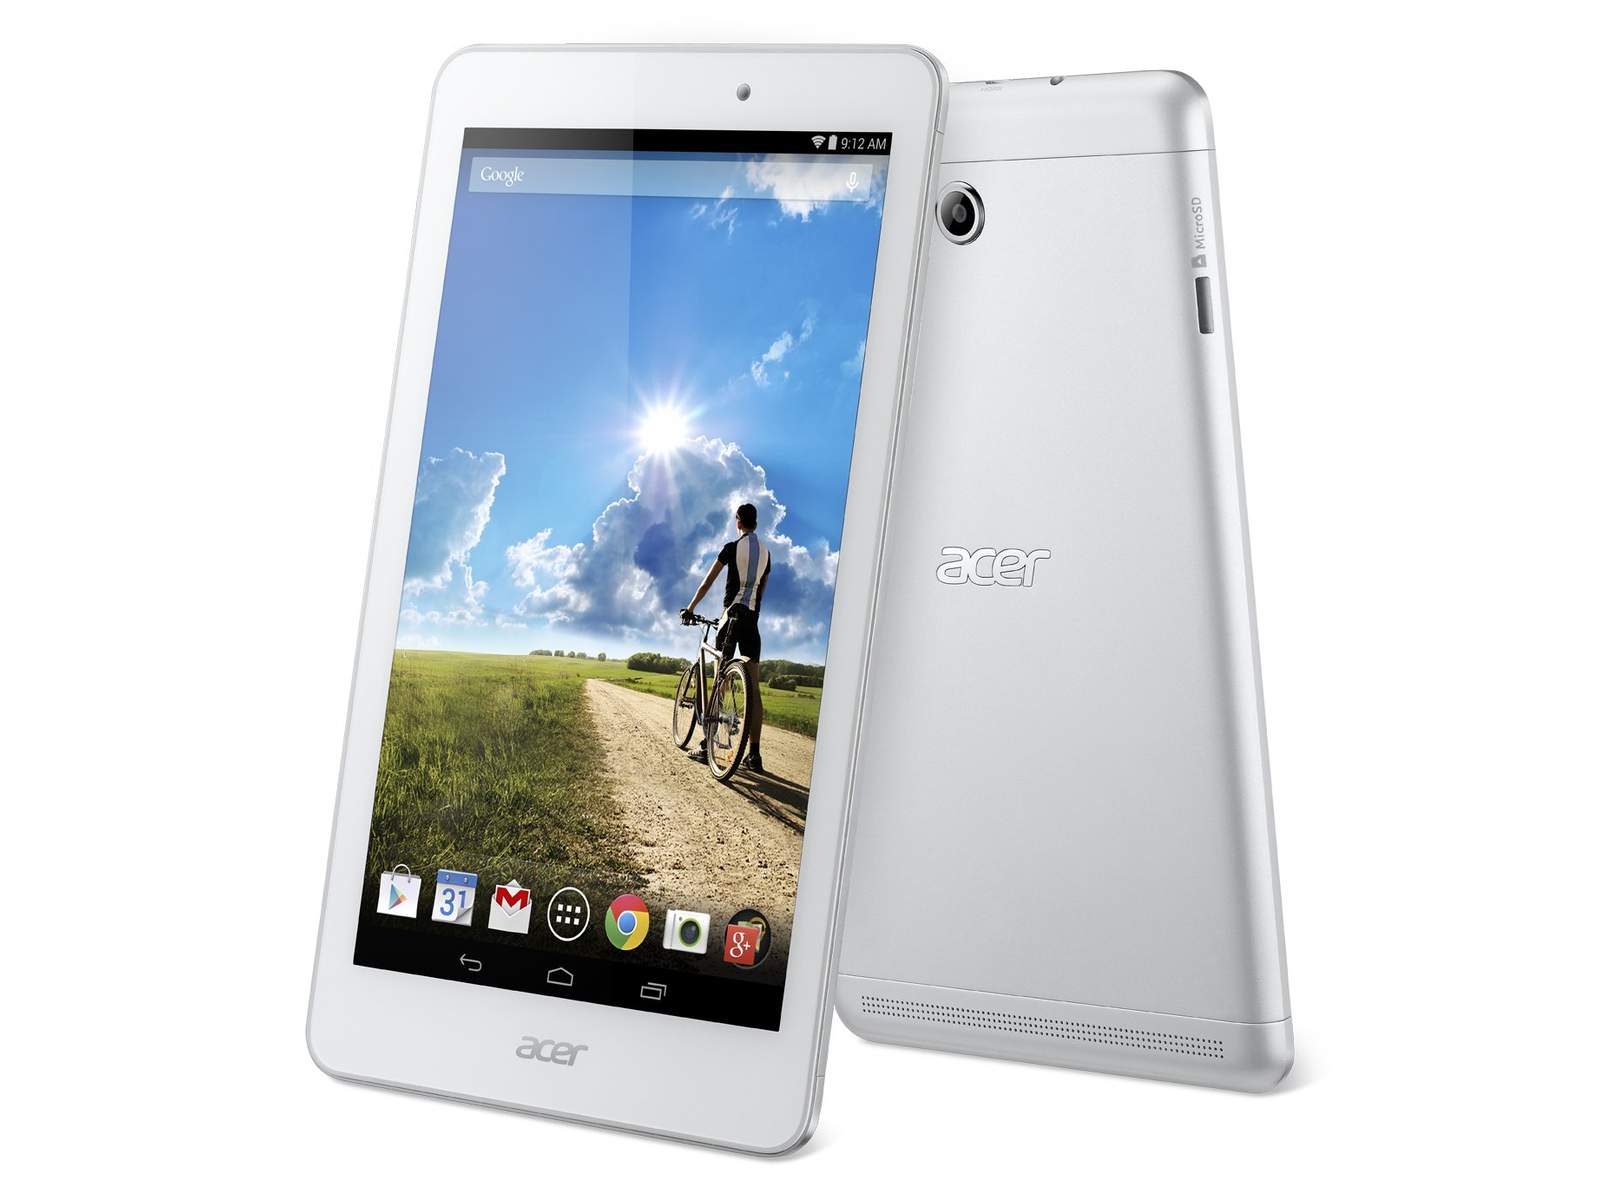 Acer Iconia Tab 8 A1 840fhd Photos Images And Wallpapers